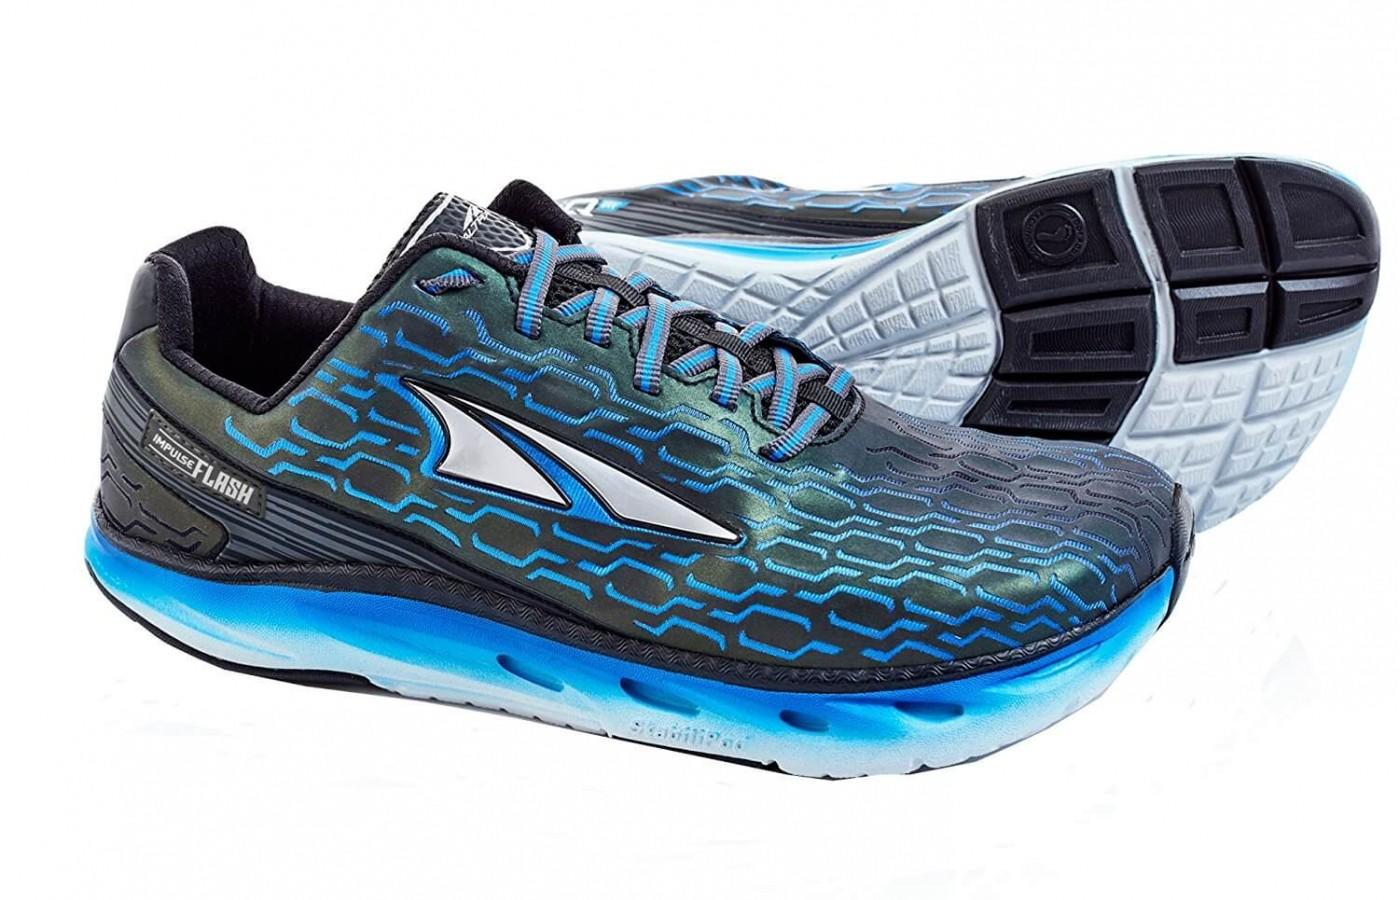 The Altra Impulse Flash makes a bold statement